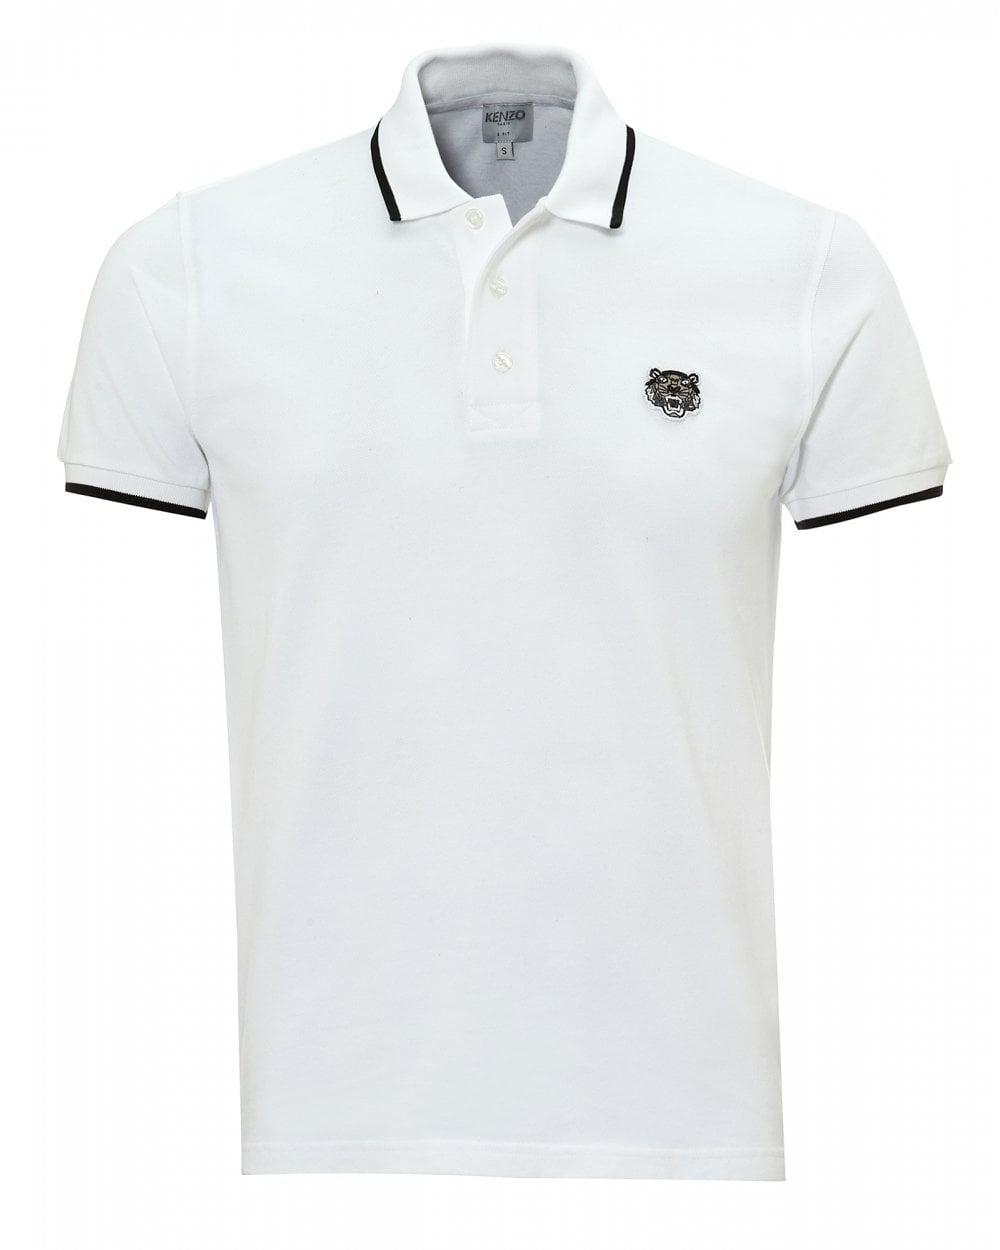 353caa97b4 KENZO Tiger Polo Shirt, Tipped Regular Fit White Polo in White for ...